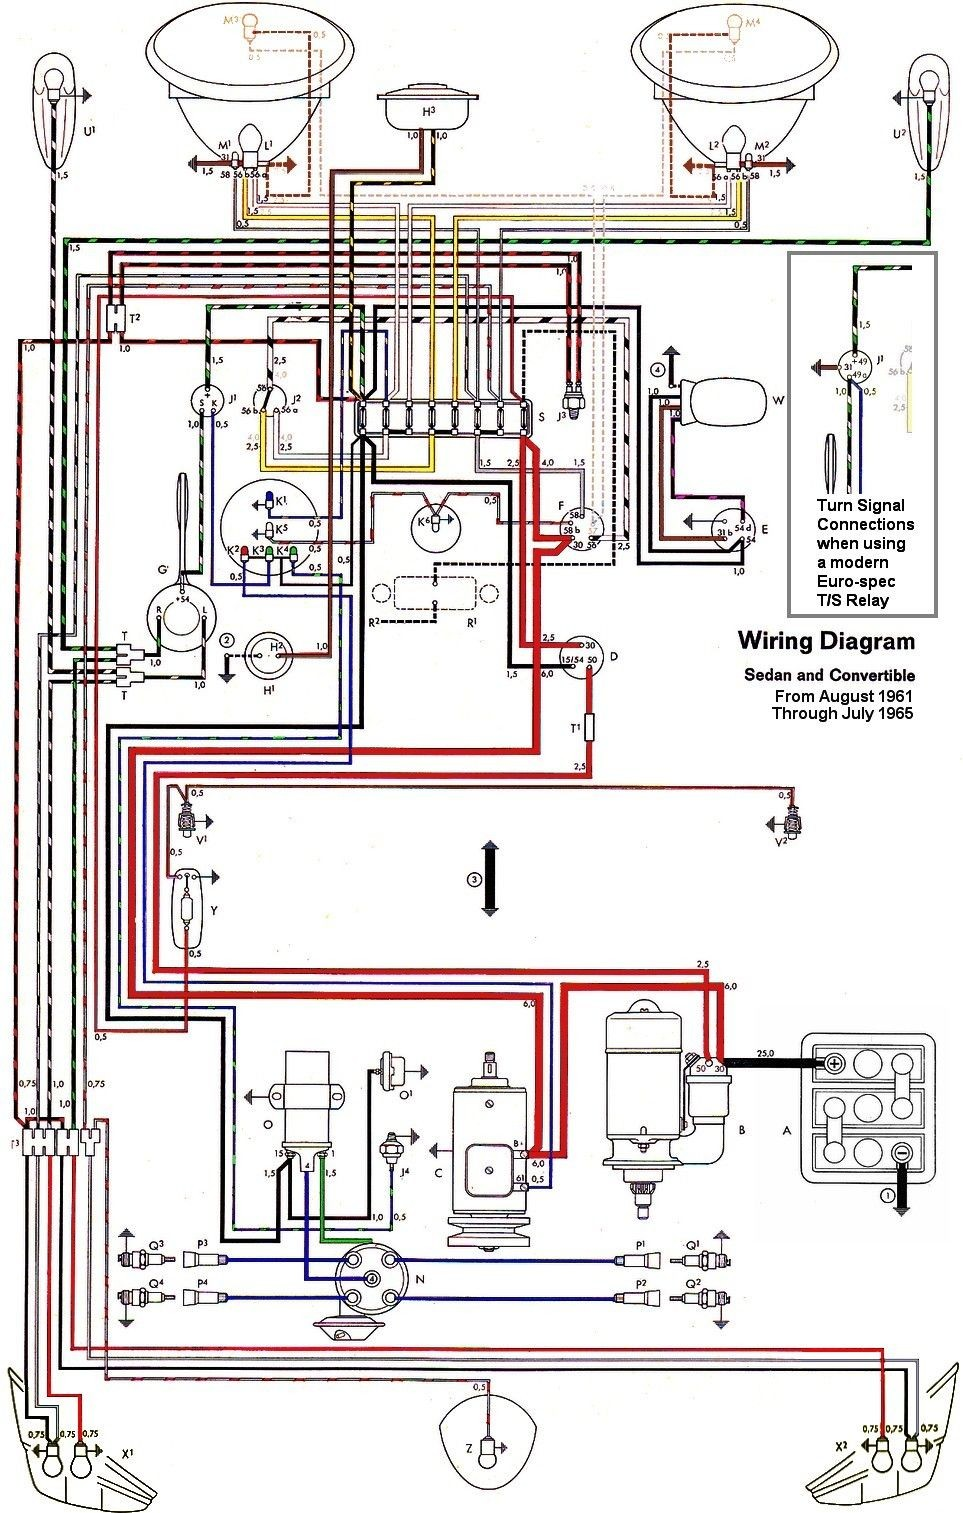 1974 vw beetle wiring diagram new wiring diagram image rh mainetreasurechest com 1973 vw wiring harness 1973 vw wiring harness